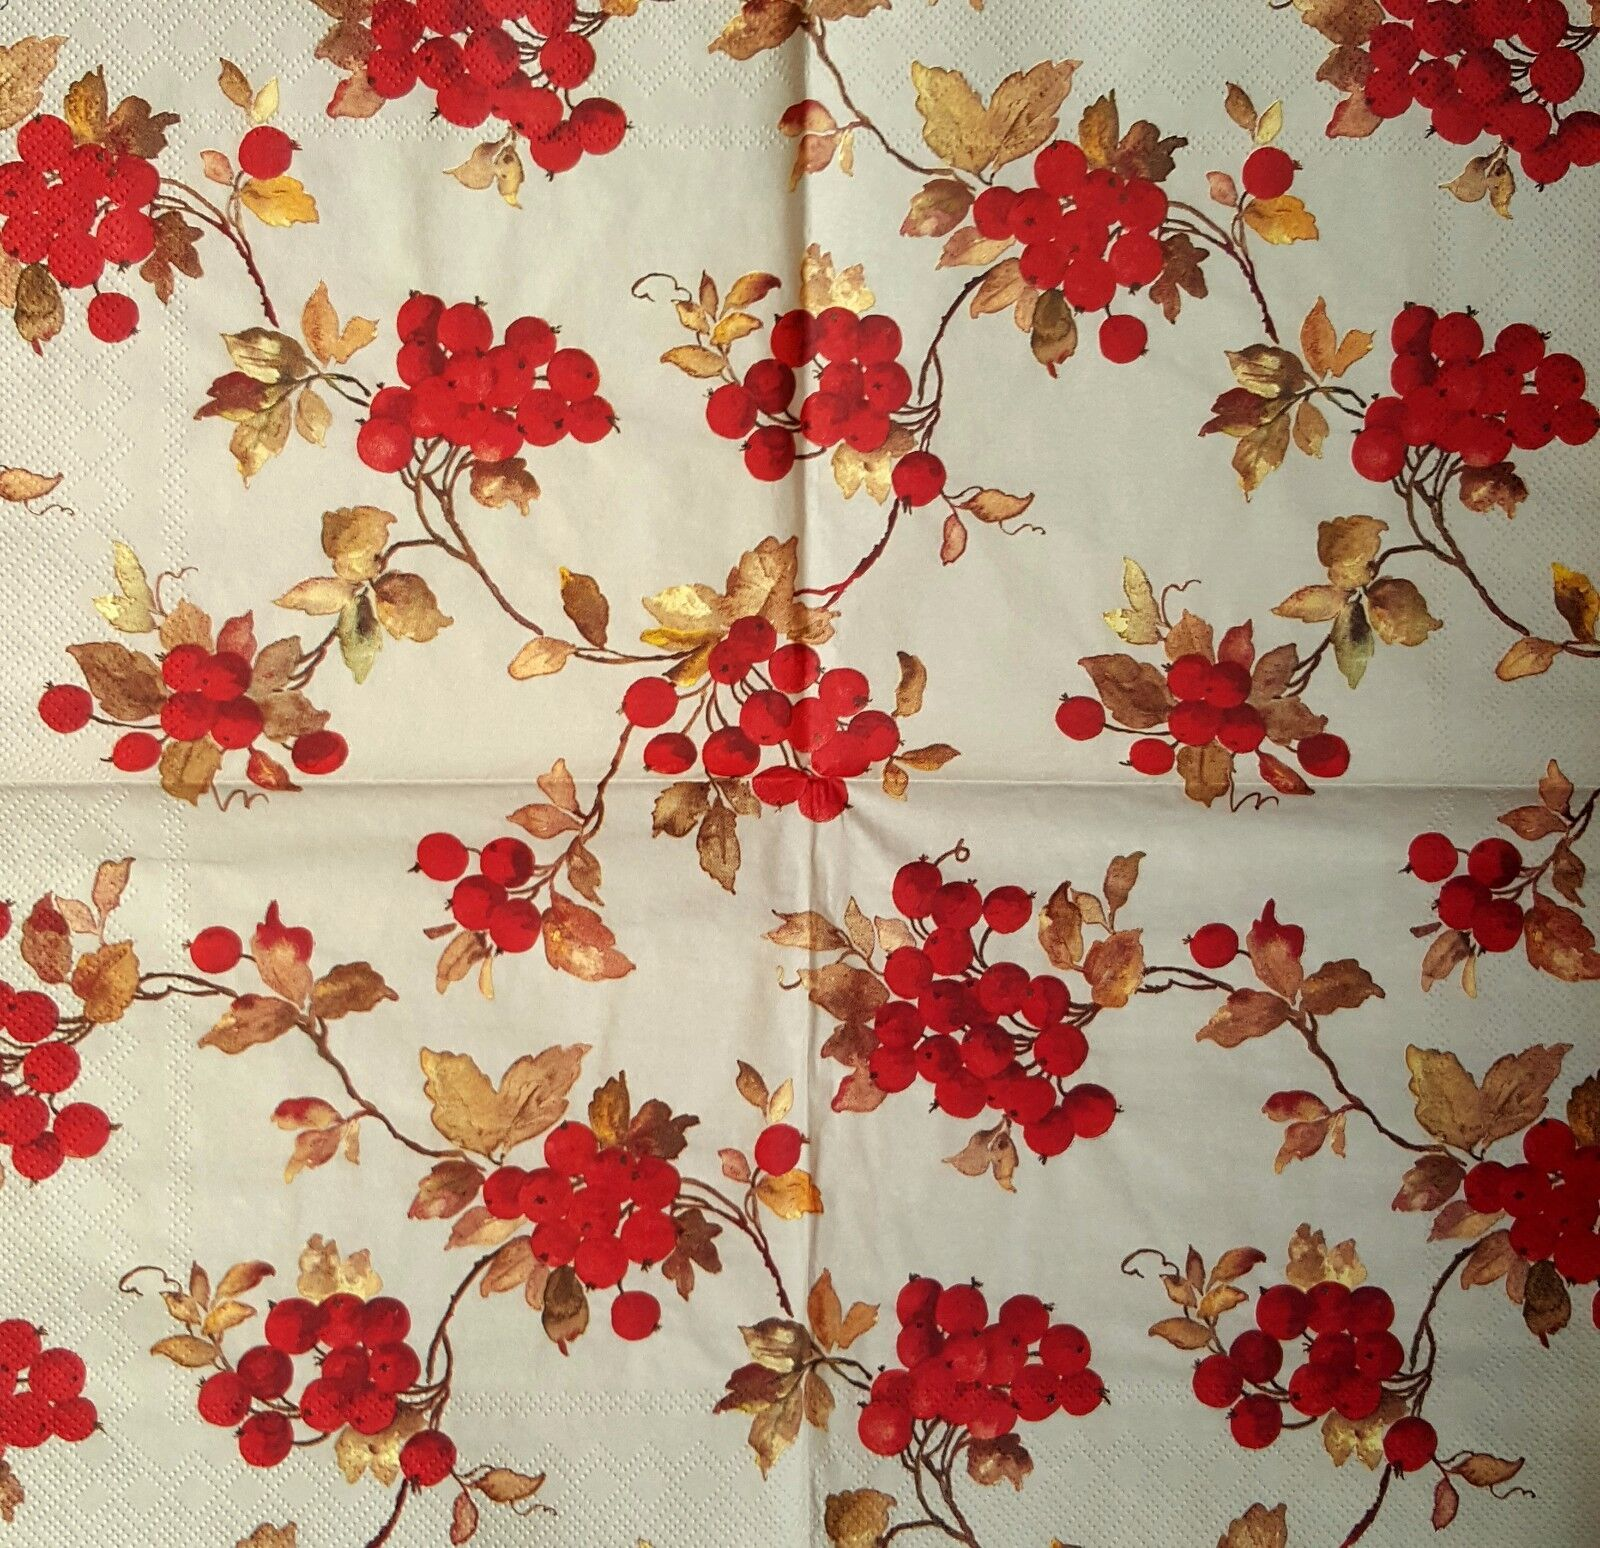 Tassotti Scrittura 4x Paper Napkins for Decoupage Craft and Party